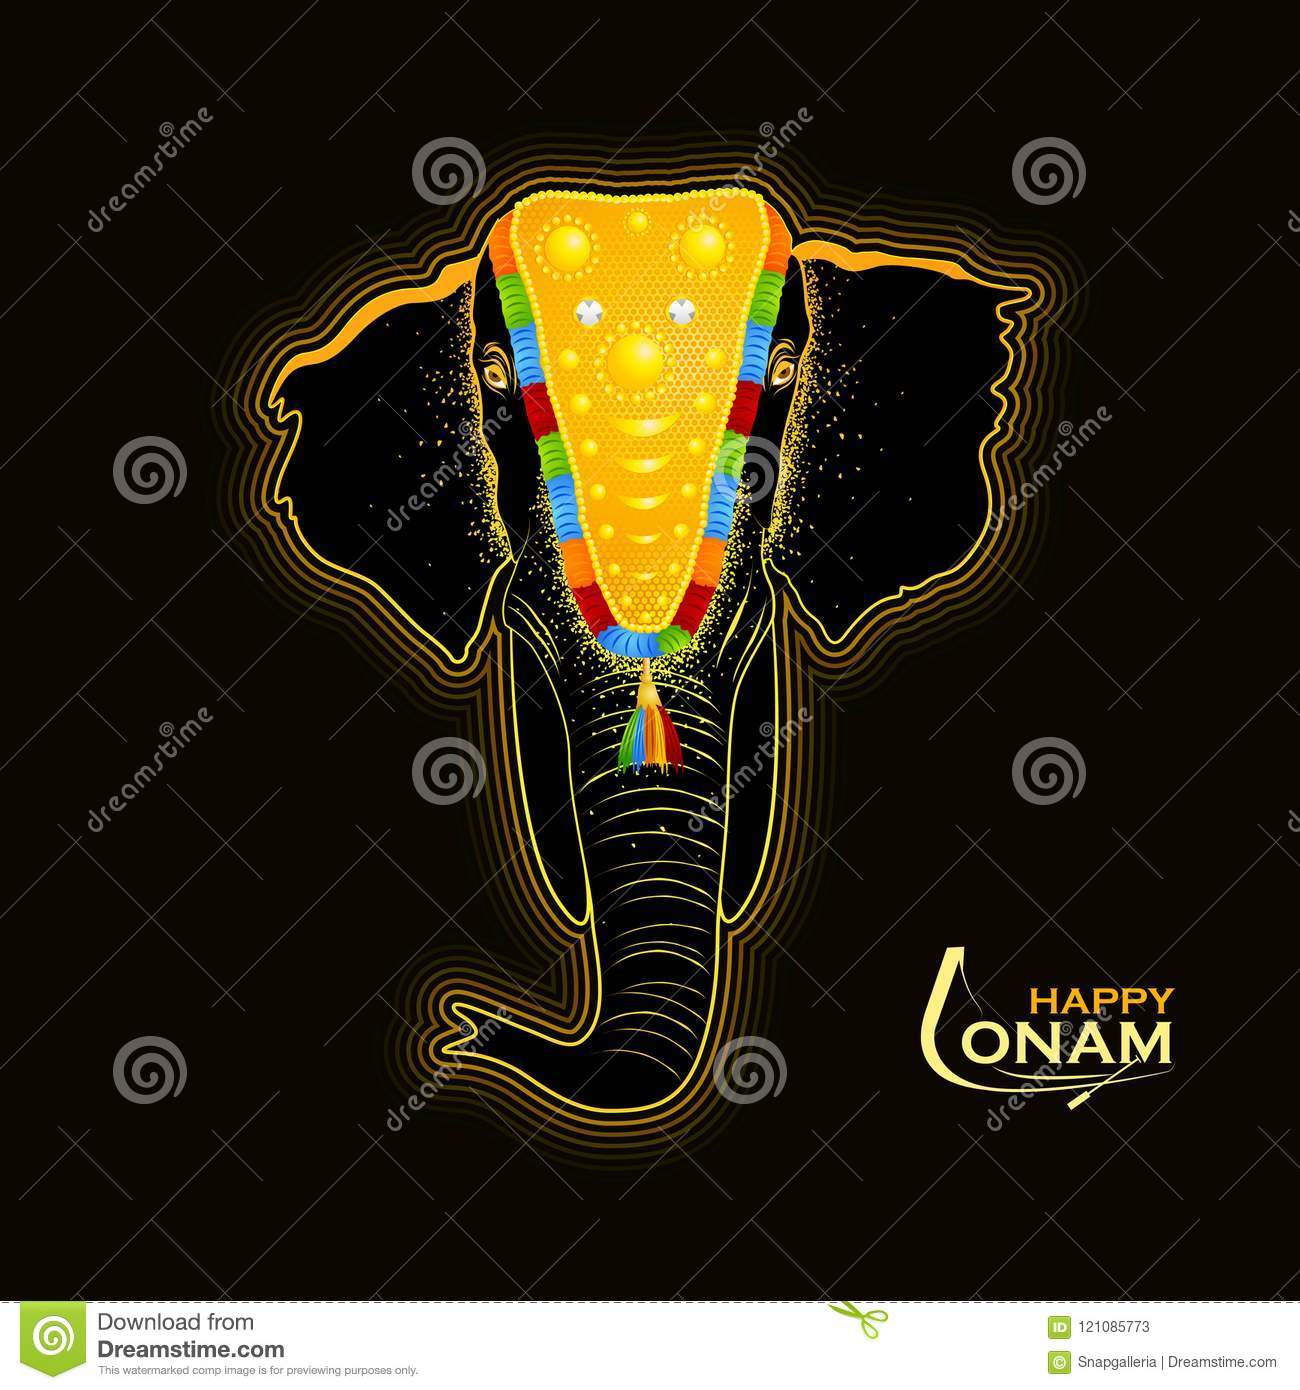 Decorated Elephant For Happy Onam Stock Vector Illustration Of